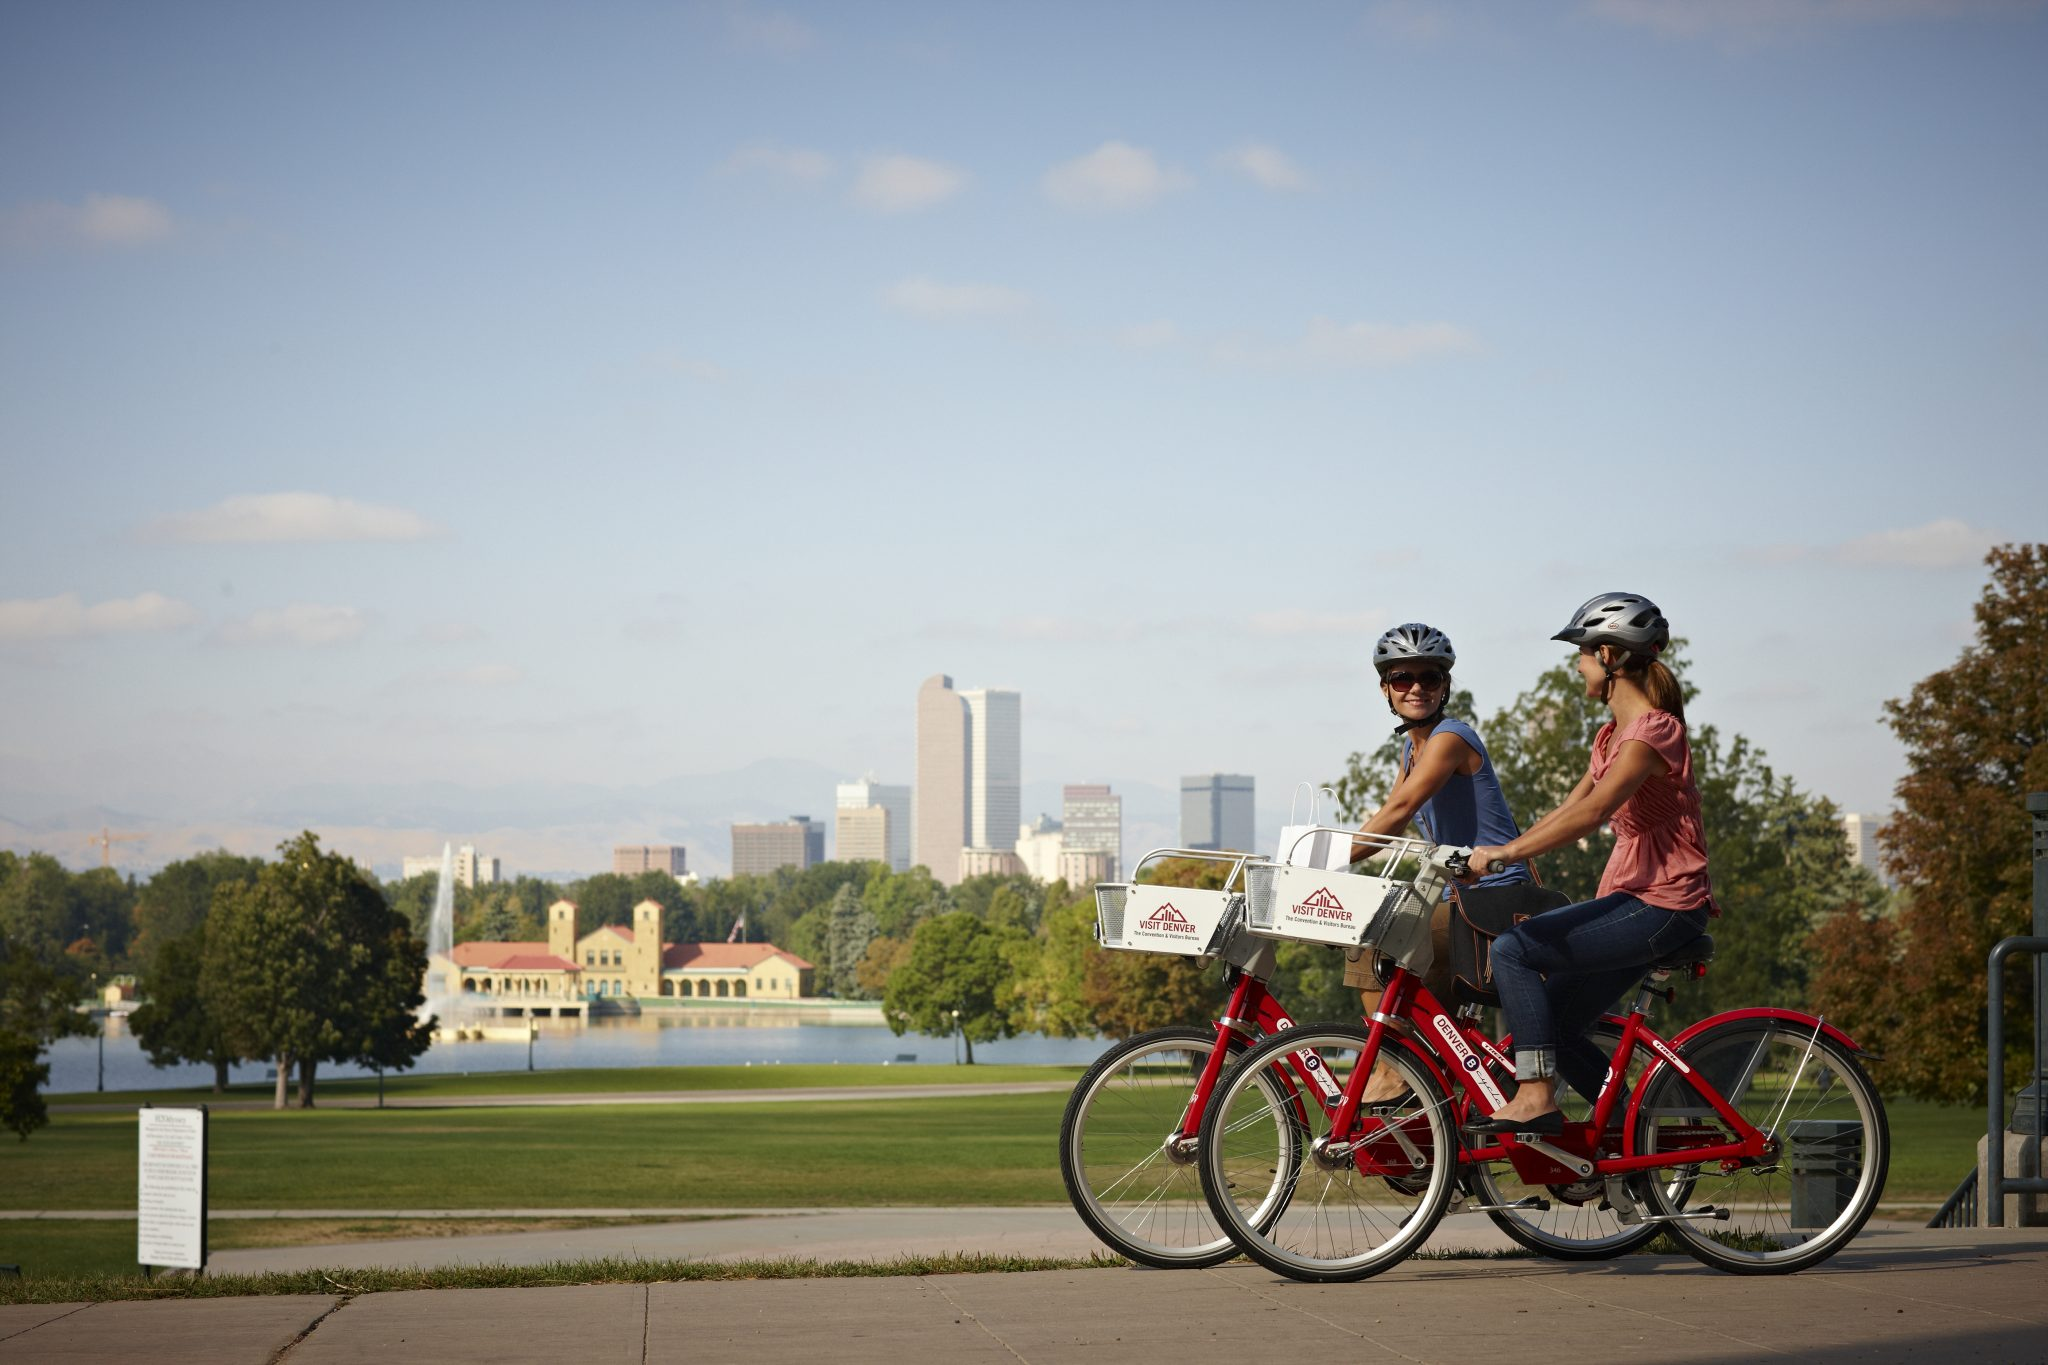 Bike share in Denver, one of the early adopters in the U.S. Credit: Denver B-cycle.